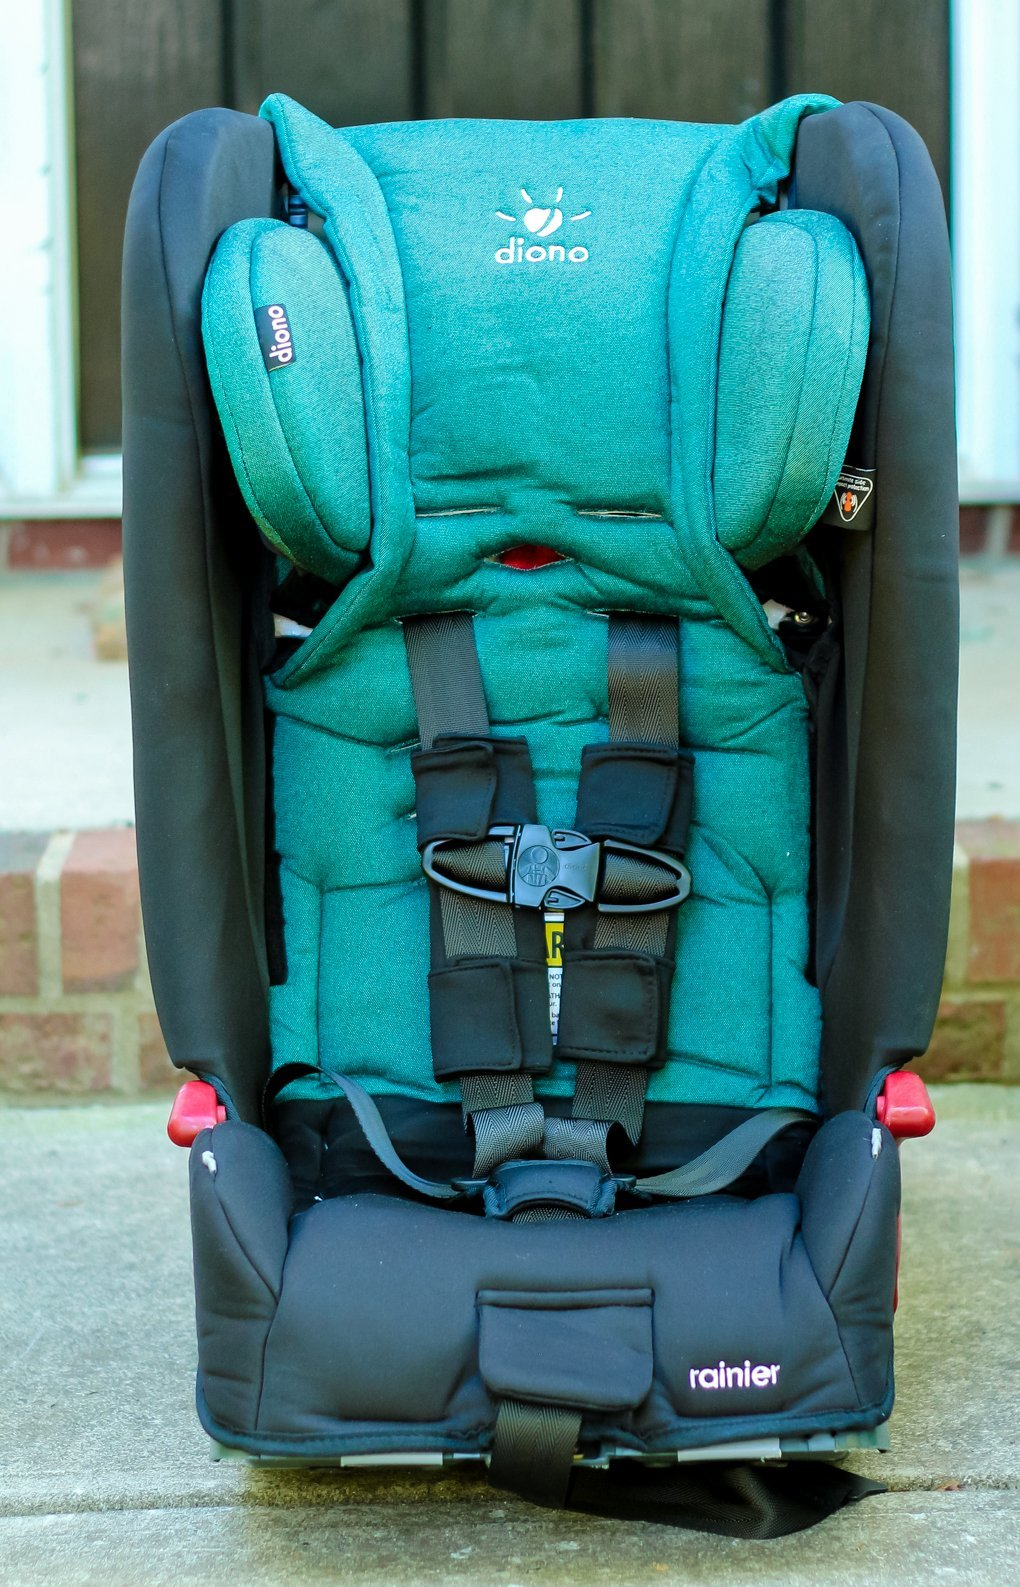 GRANDPARENT CAR SEAT MYTHS DEBUNKED WITH DIONO RAINIER 2 Daily Mom Parents Portal